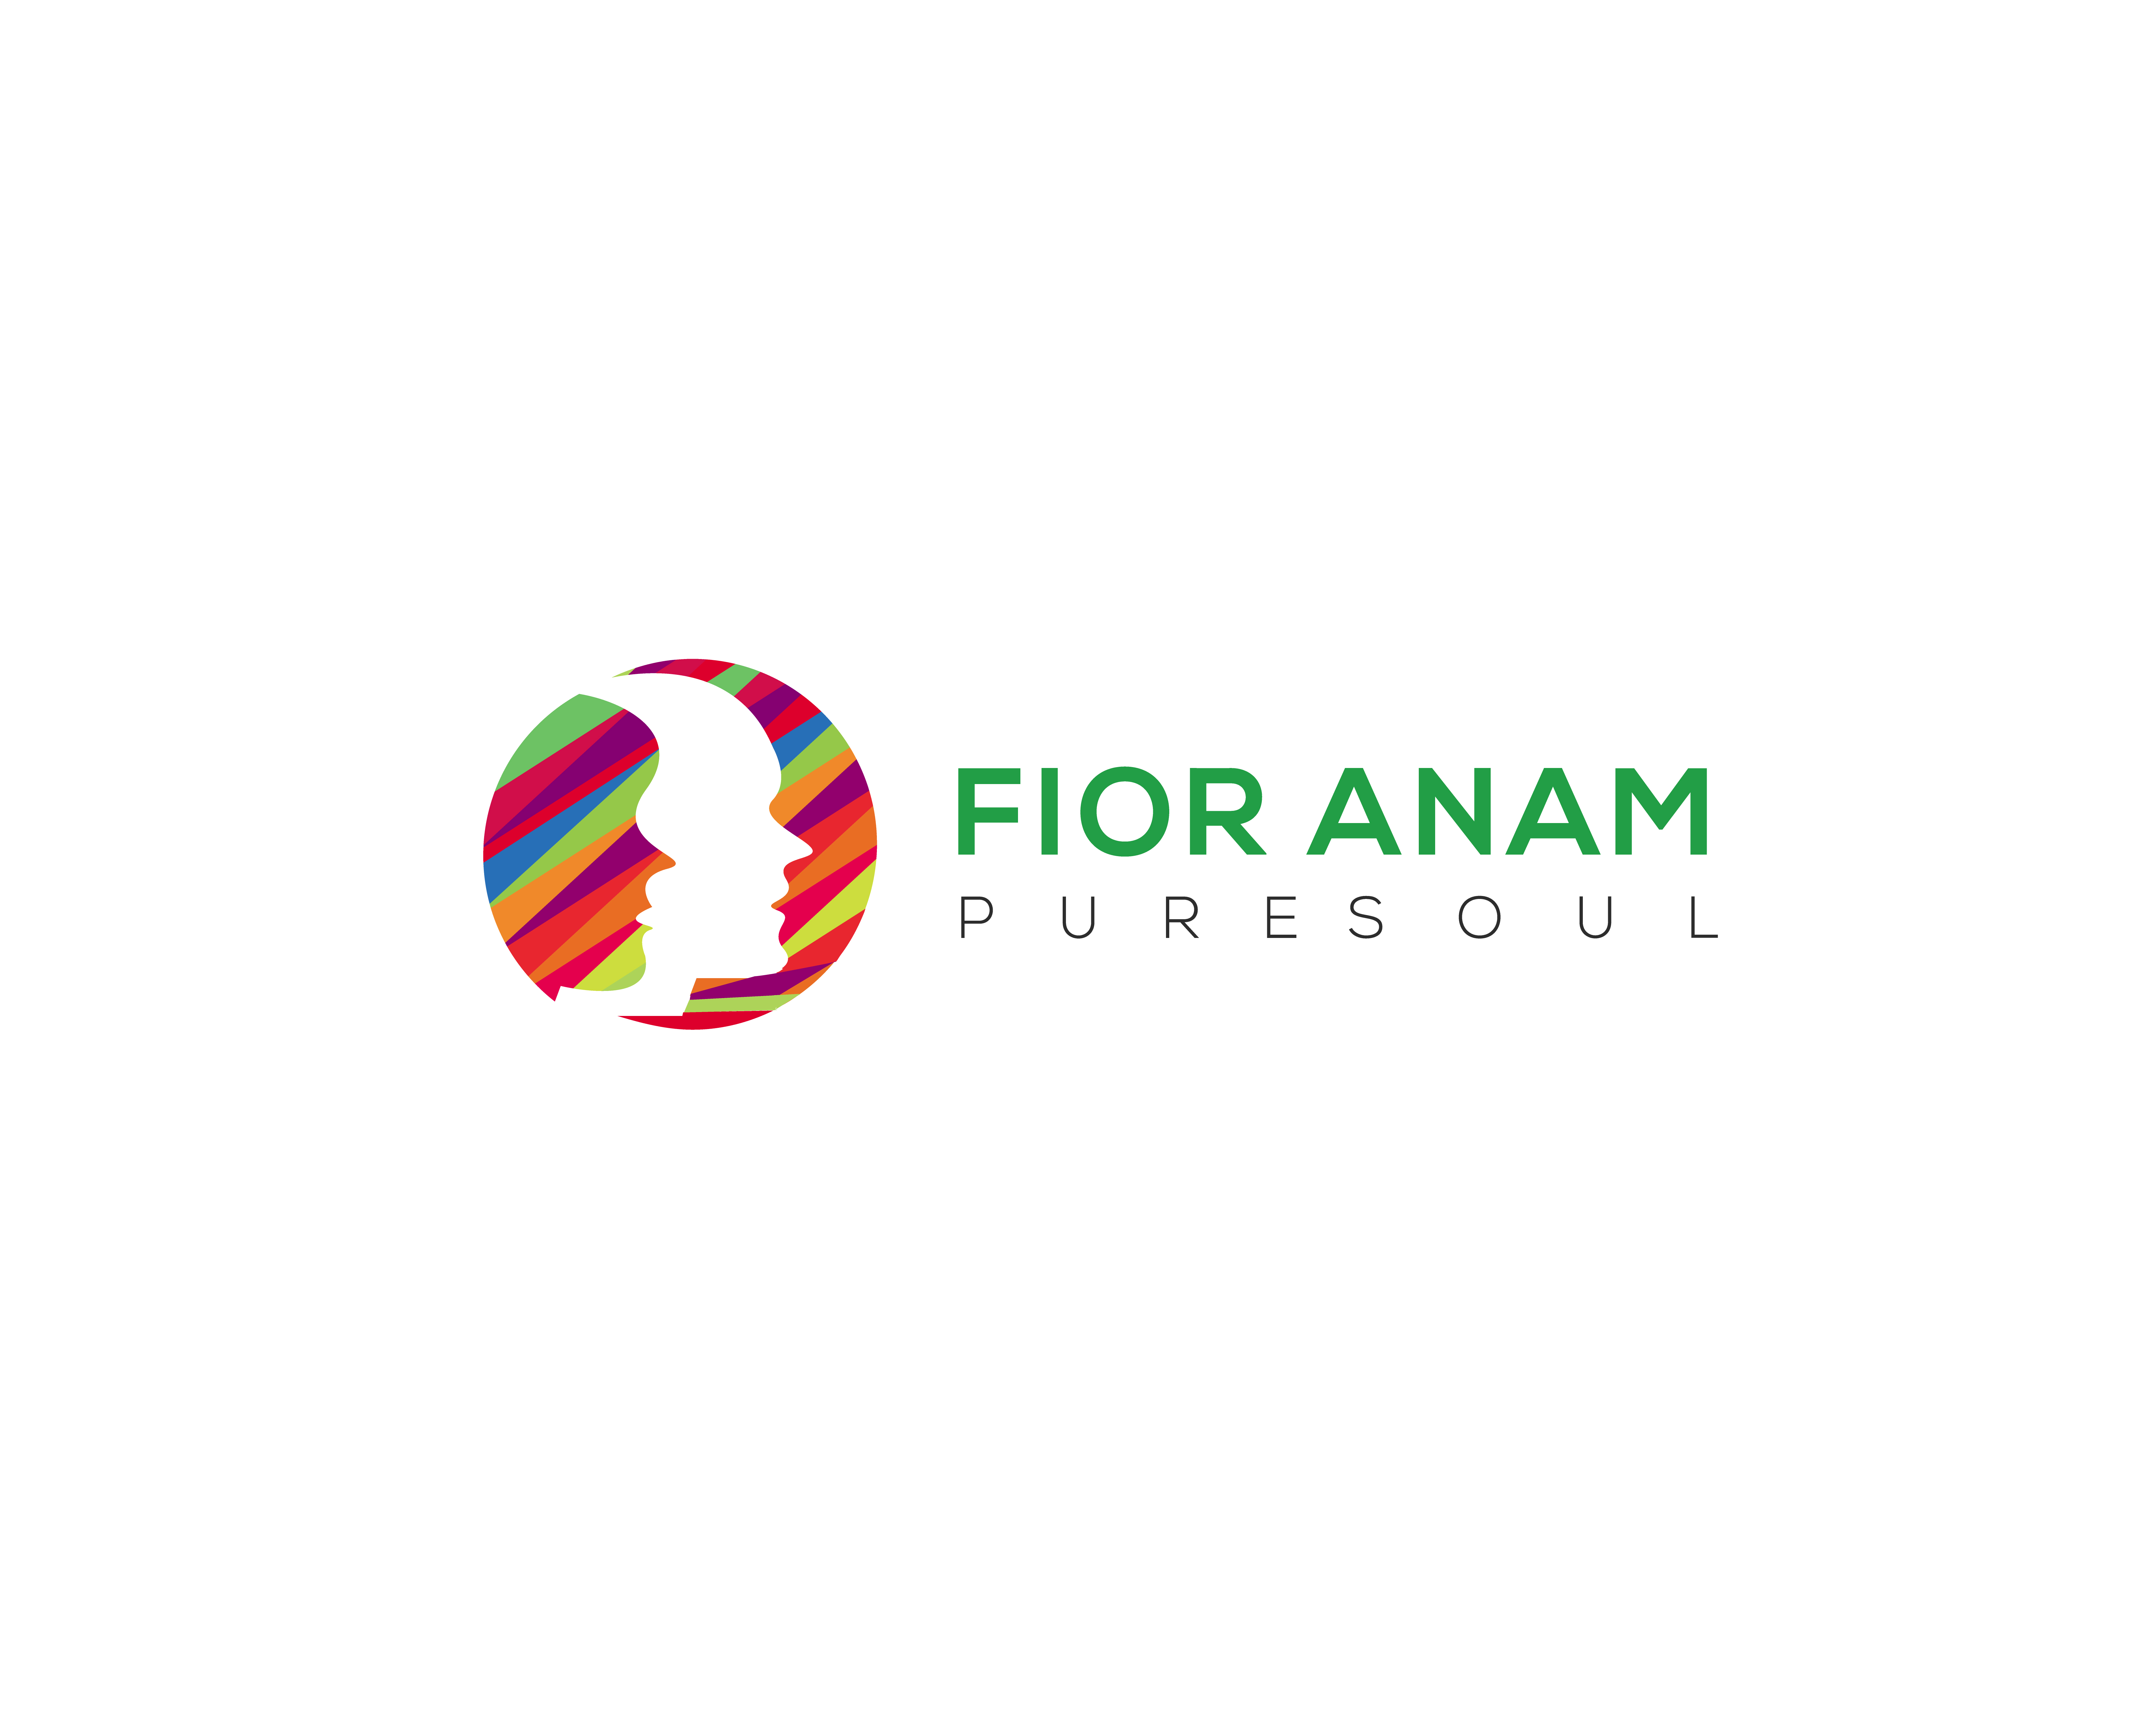 Logo Design by Robiul Robin - Entry No. 367 in the Logo Design Contest Creative Logo Design for Fior Anam.